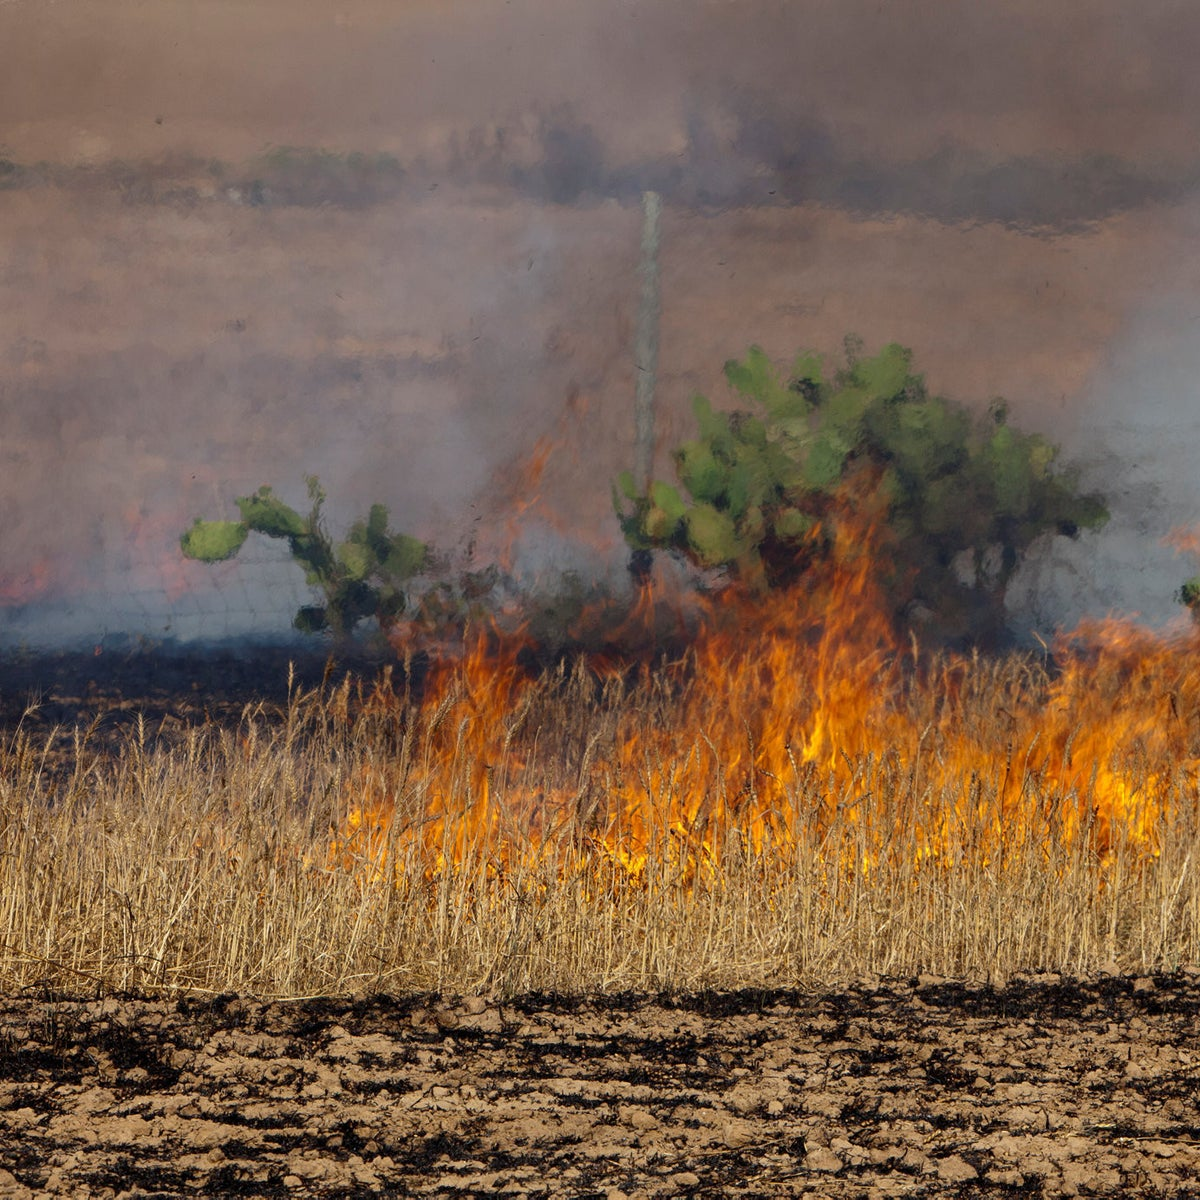 Palestinian incendiary balloons set wheat fields afire by Gaza